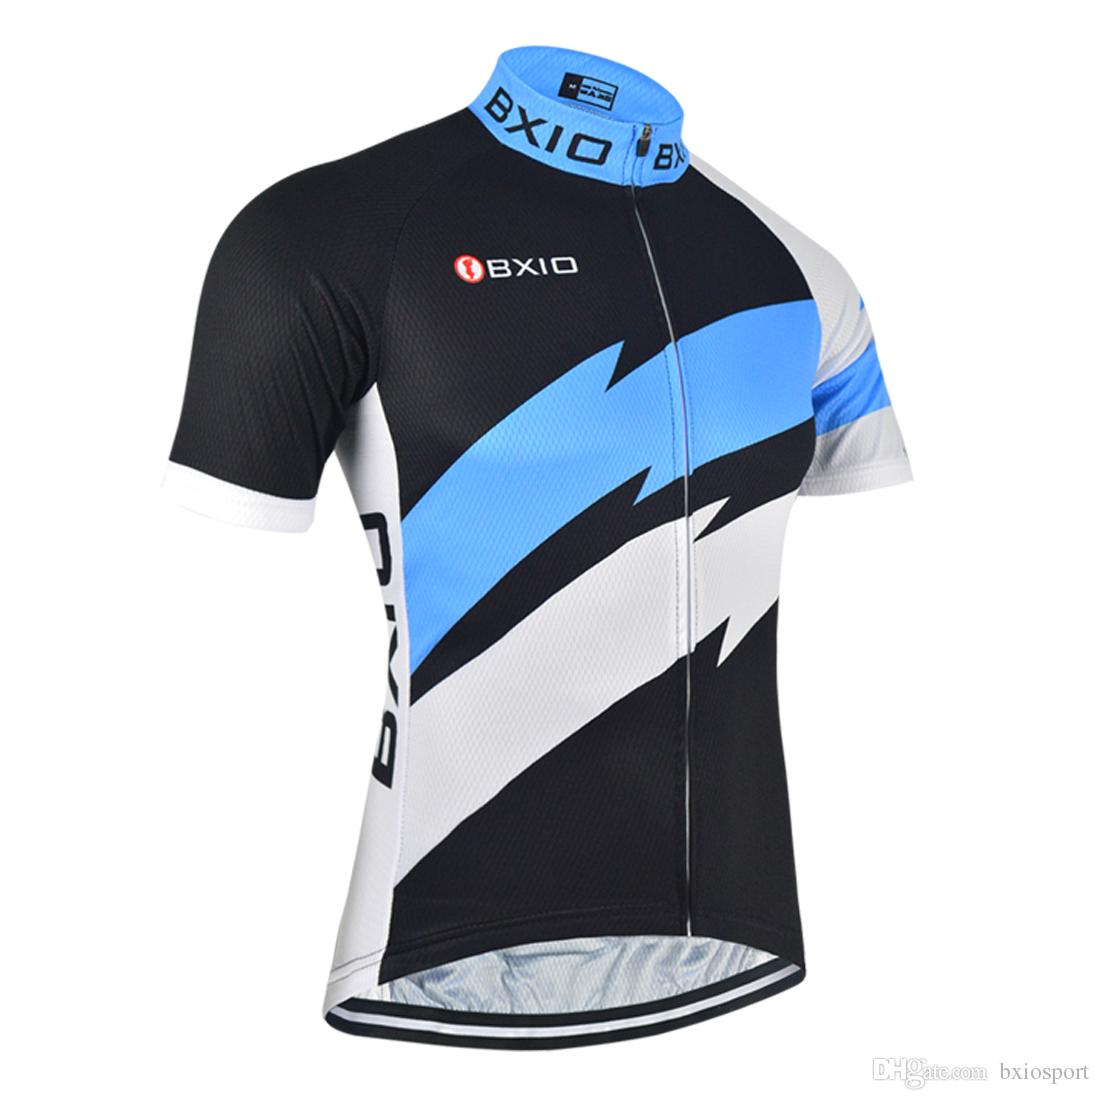 2017 BXIO Brand New Design Cycling Jersey Summer Short Sleeve Bike Clothing  Cool Outdoor Sport Wear Bicycle Jersey Ropa Ciclismo BX 146 Cycling Apparel  Bike ... 0aefb9a30